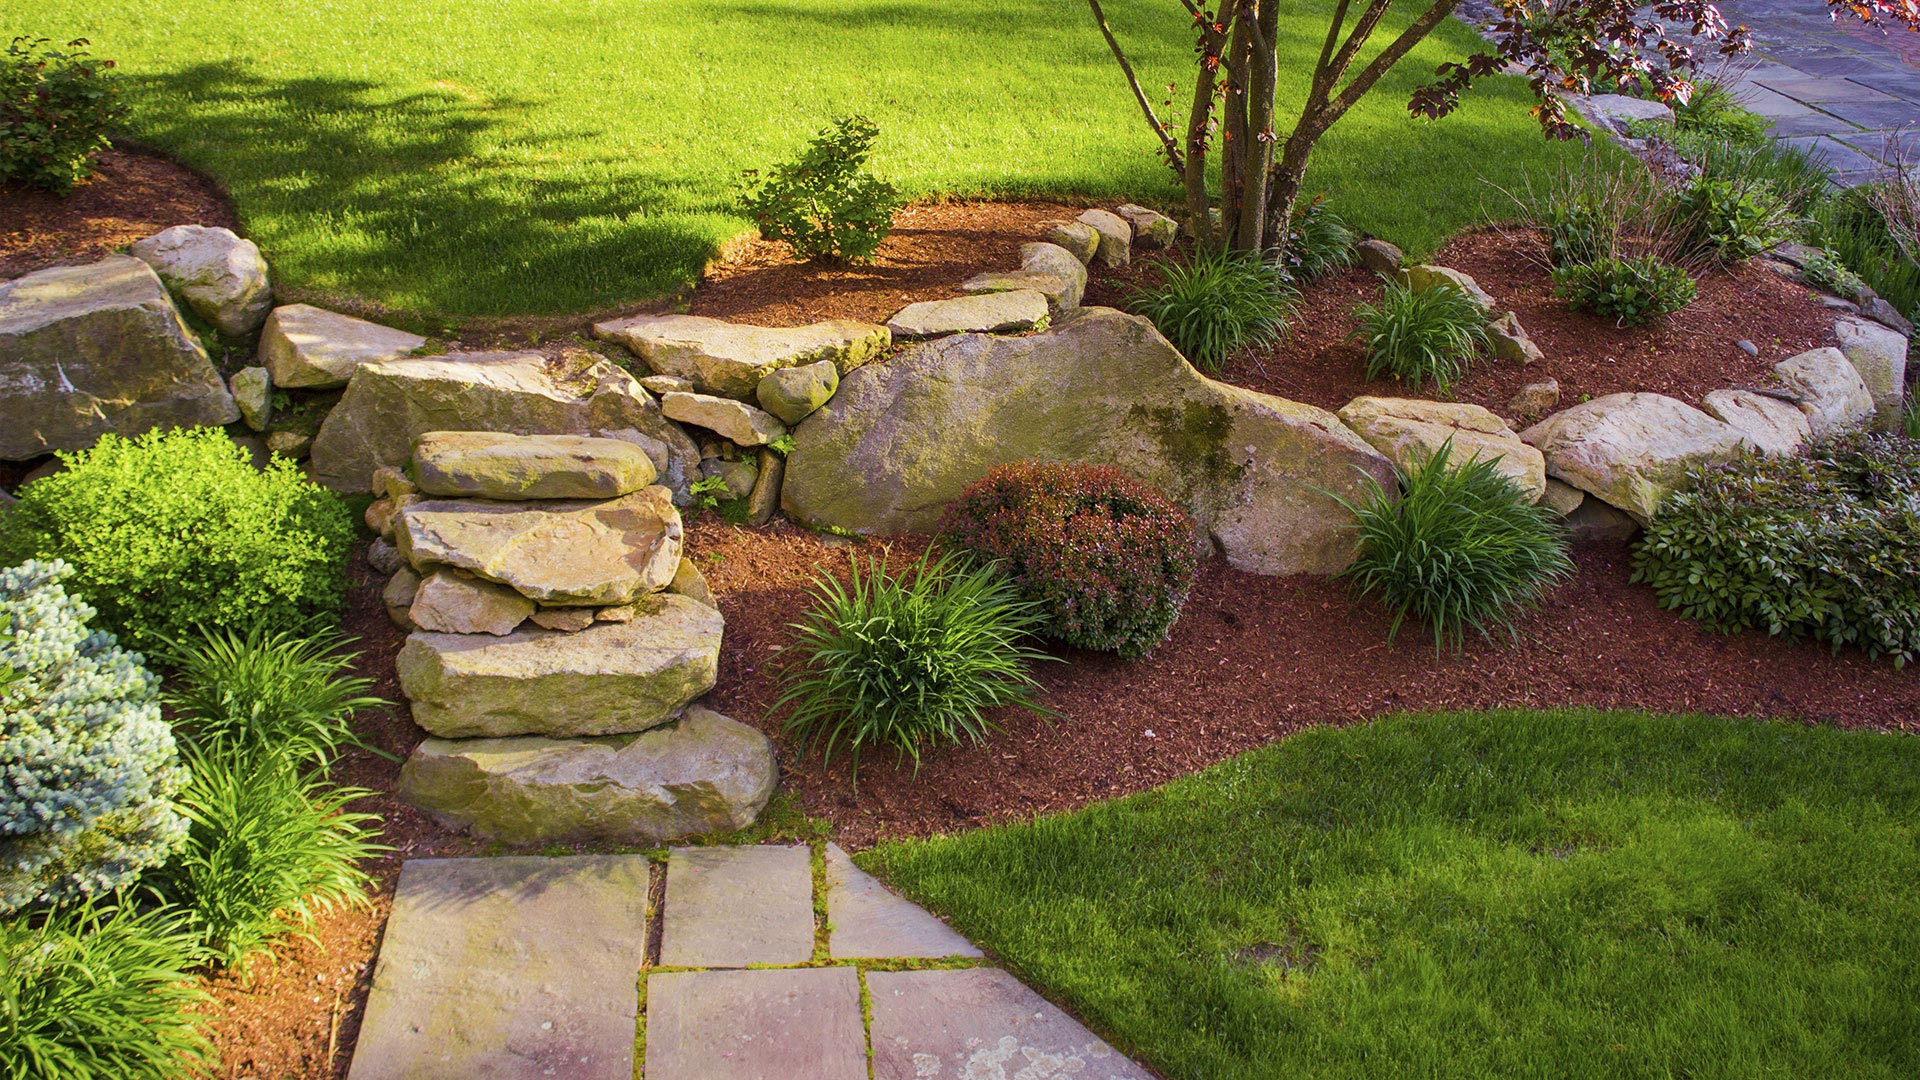 Cleancut Lawn & Landscape LLC Landscape Design, Landscape Installation and Masonry slide 3